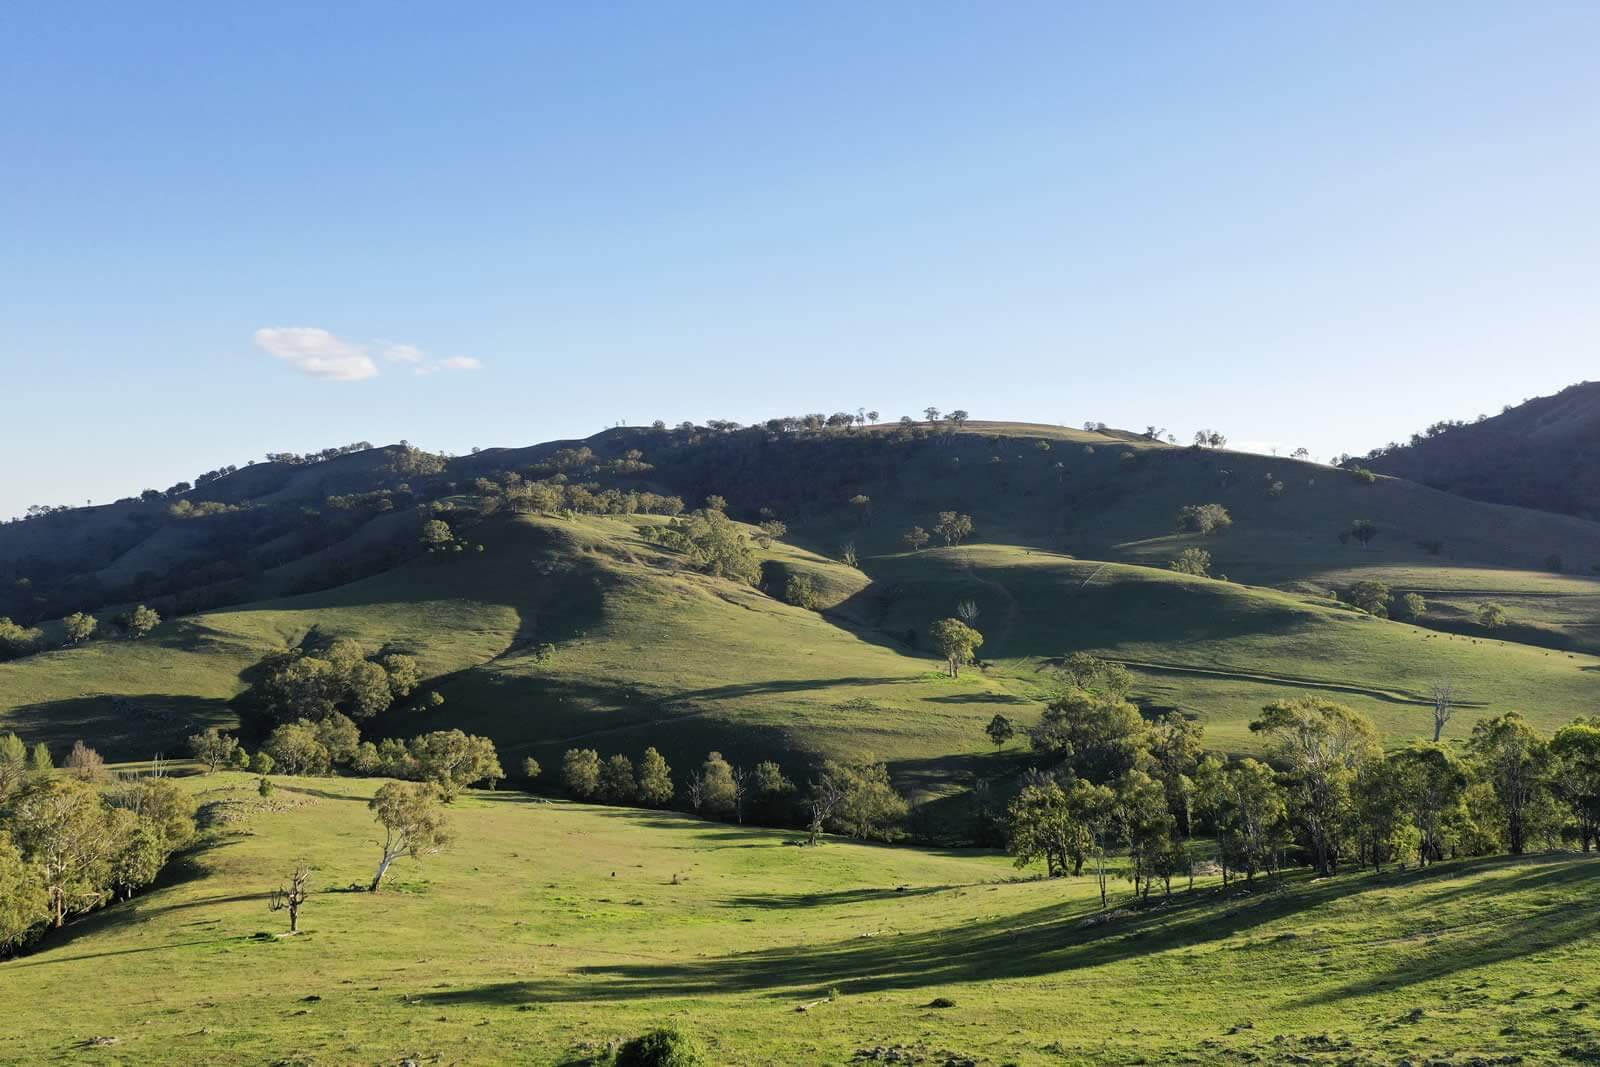 PRESS RELEASE: Scotts Creek, Murrurundi – Upper Hunter NSW:image property-sale-upper-hunter-nsw-australia